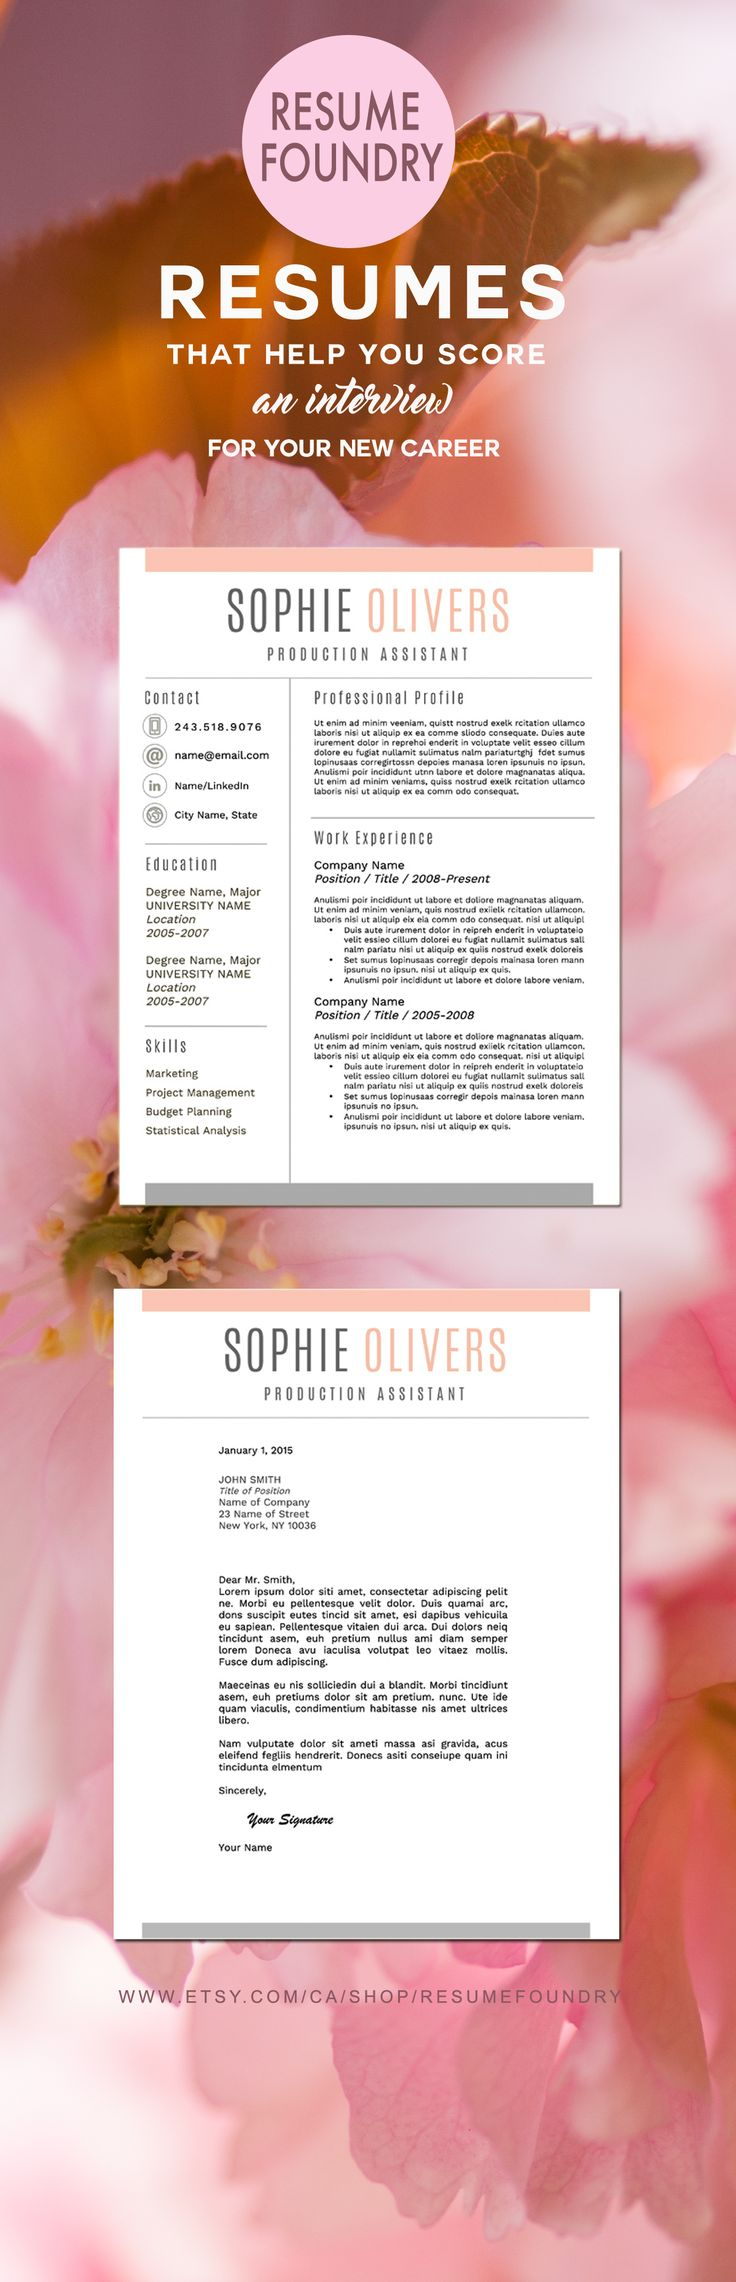 Best Resume Templates  Etsy Images On   Cover Letter